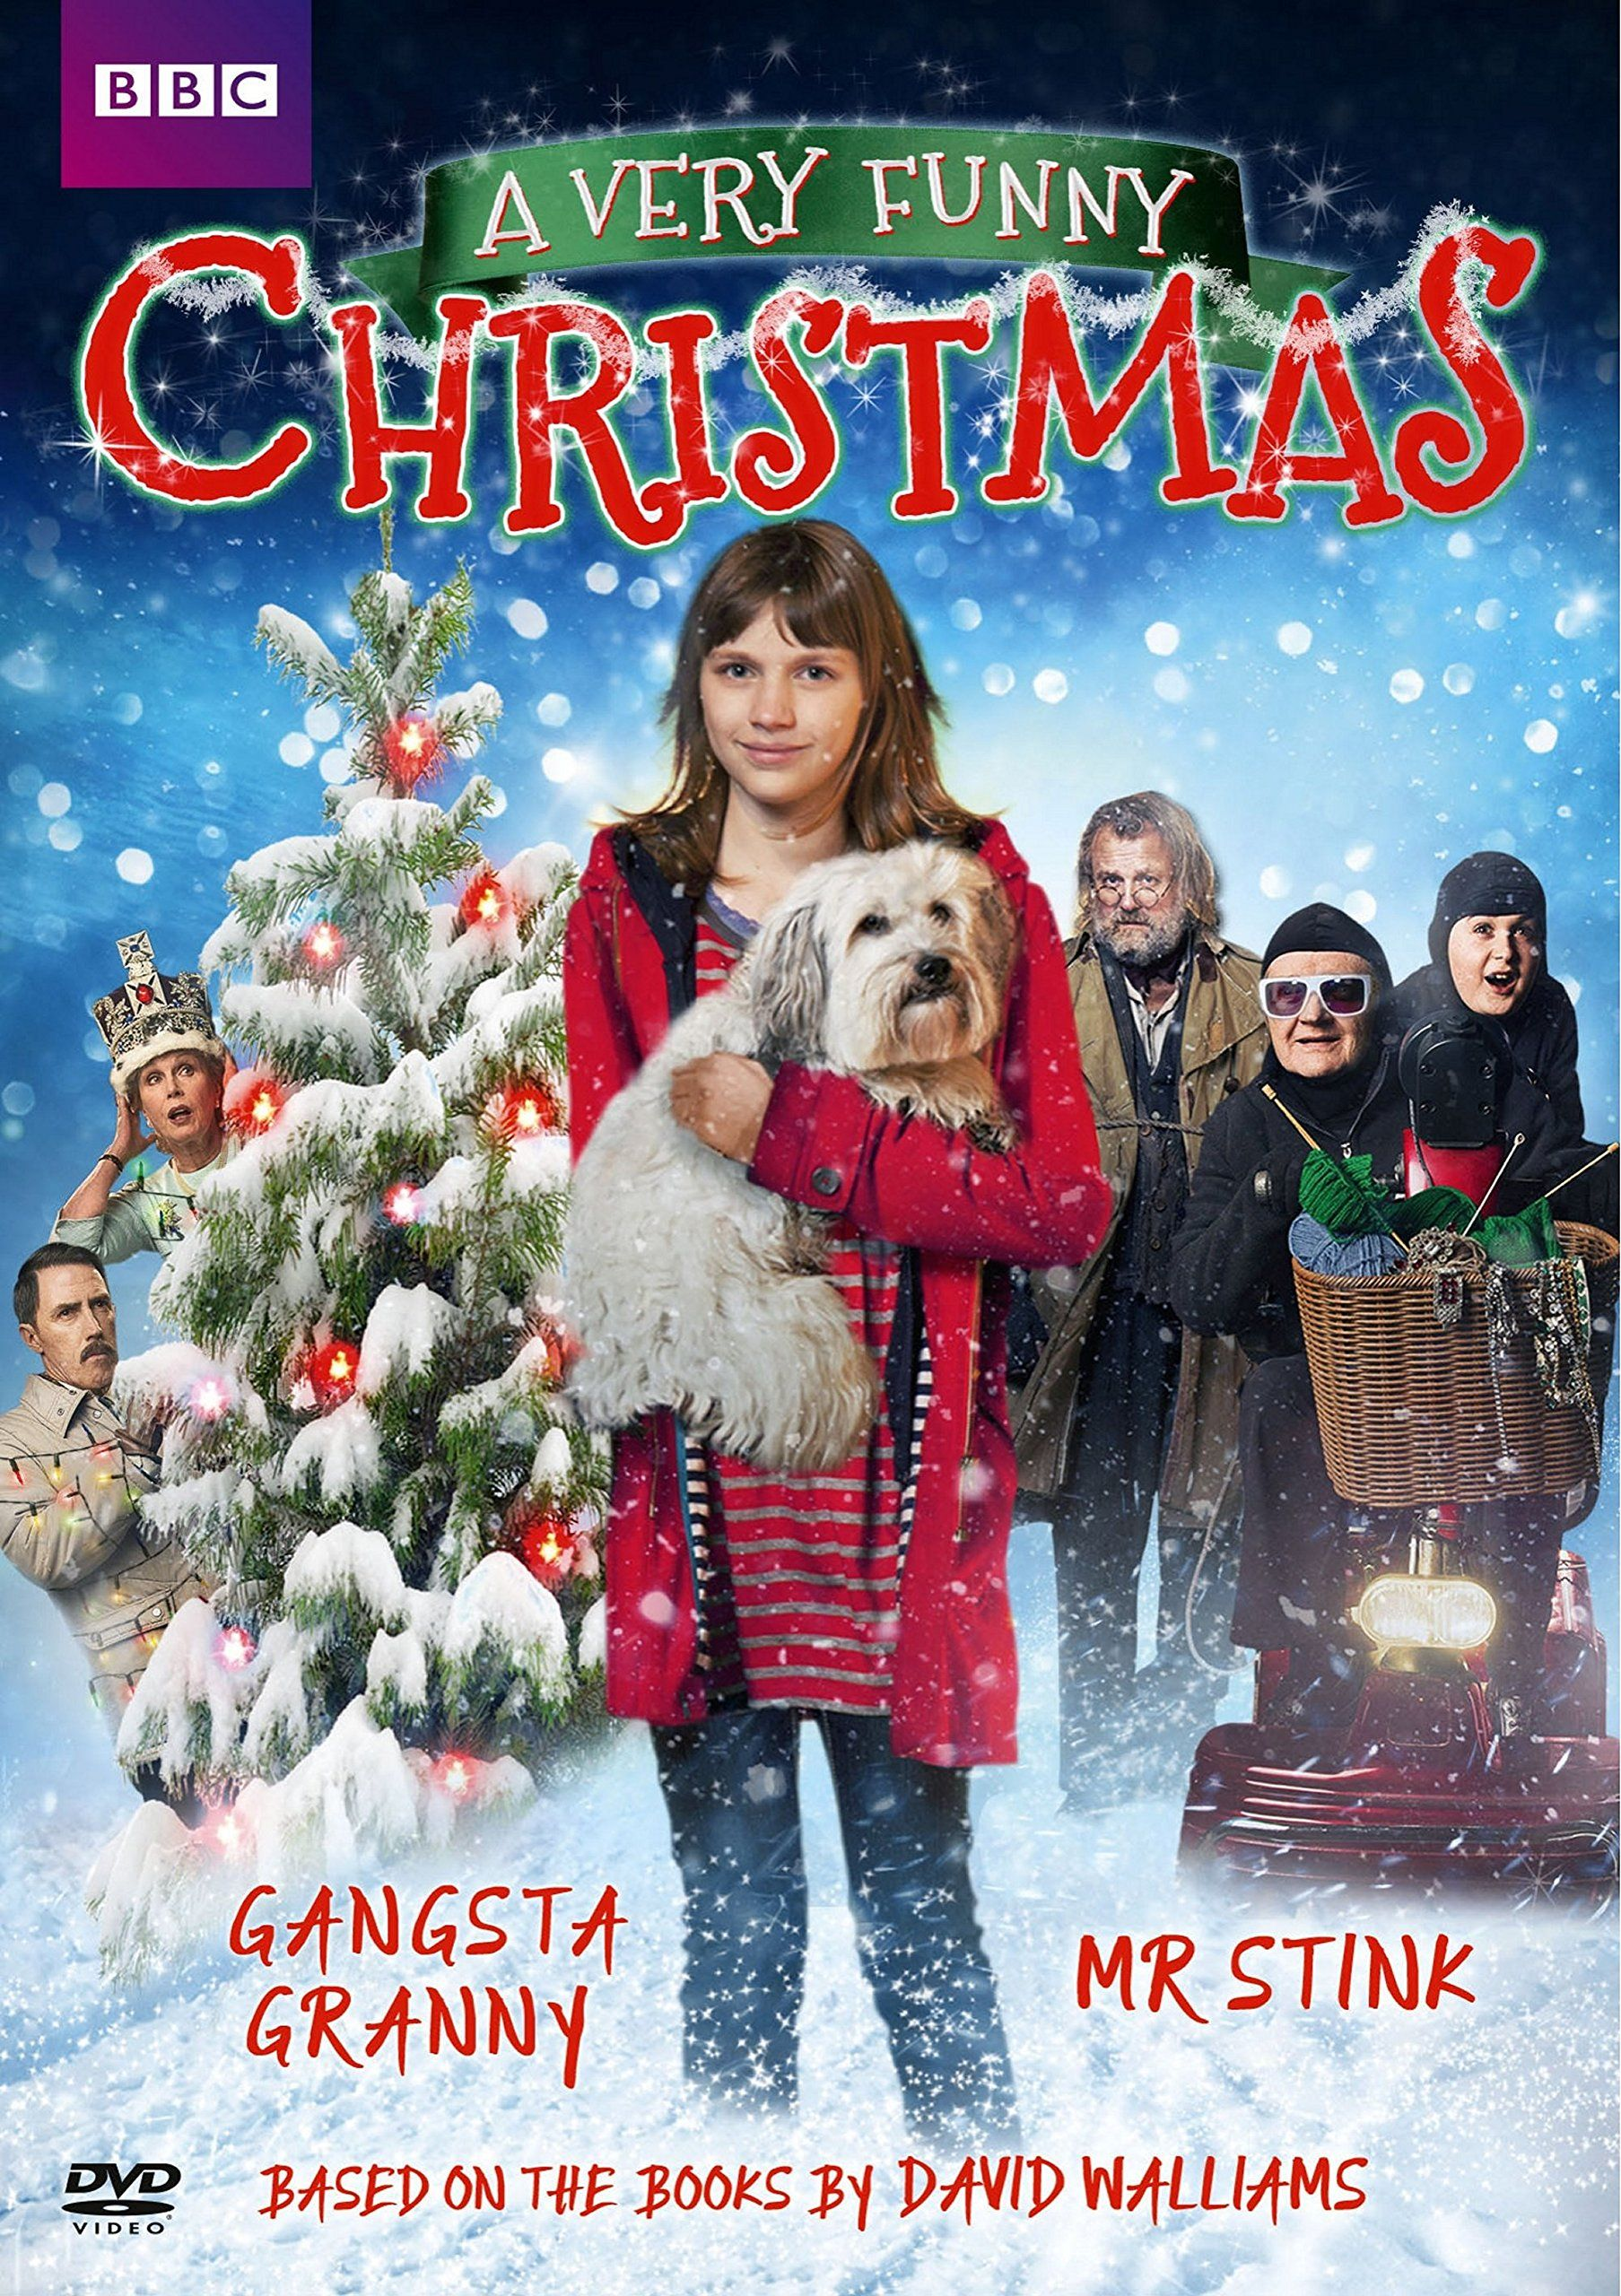 A Very Funny Christmas November 18th, 2014 DVD/Bluray